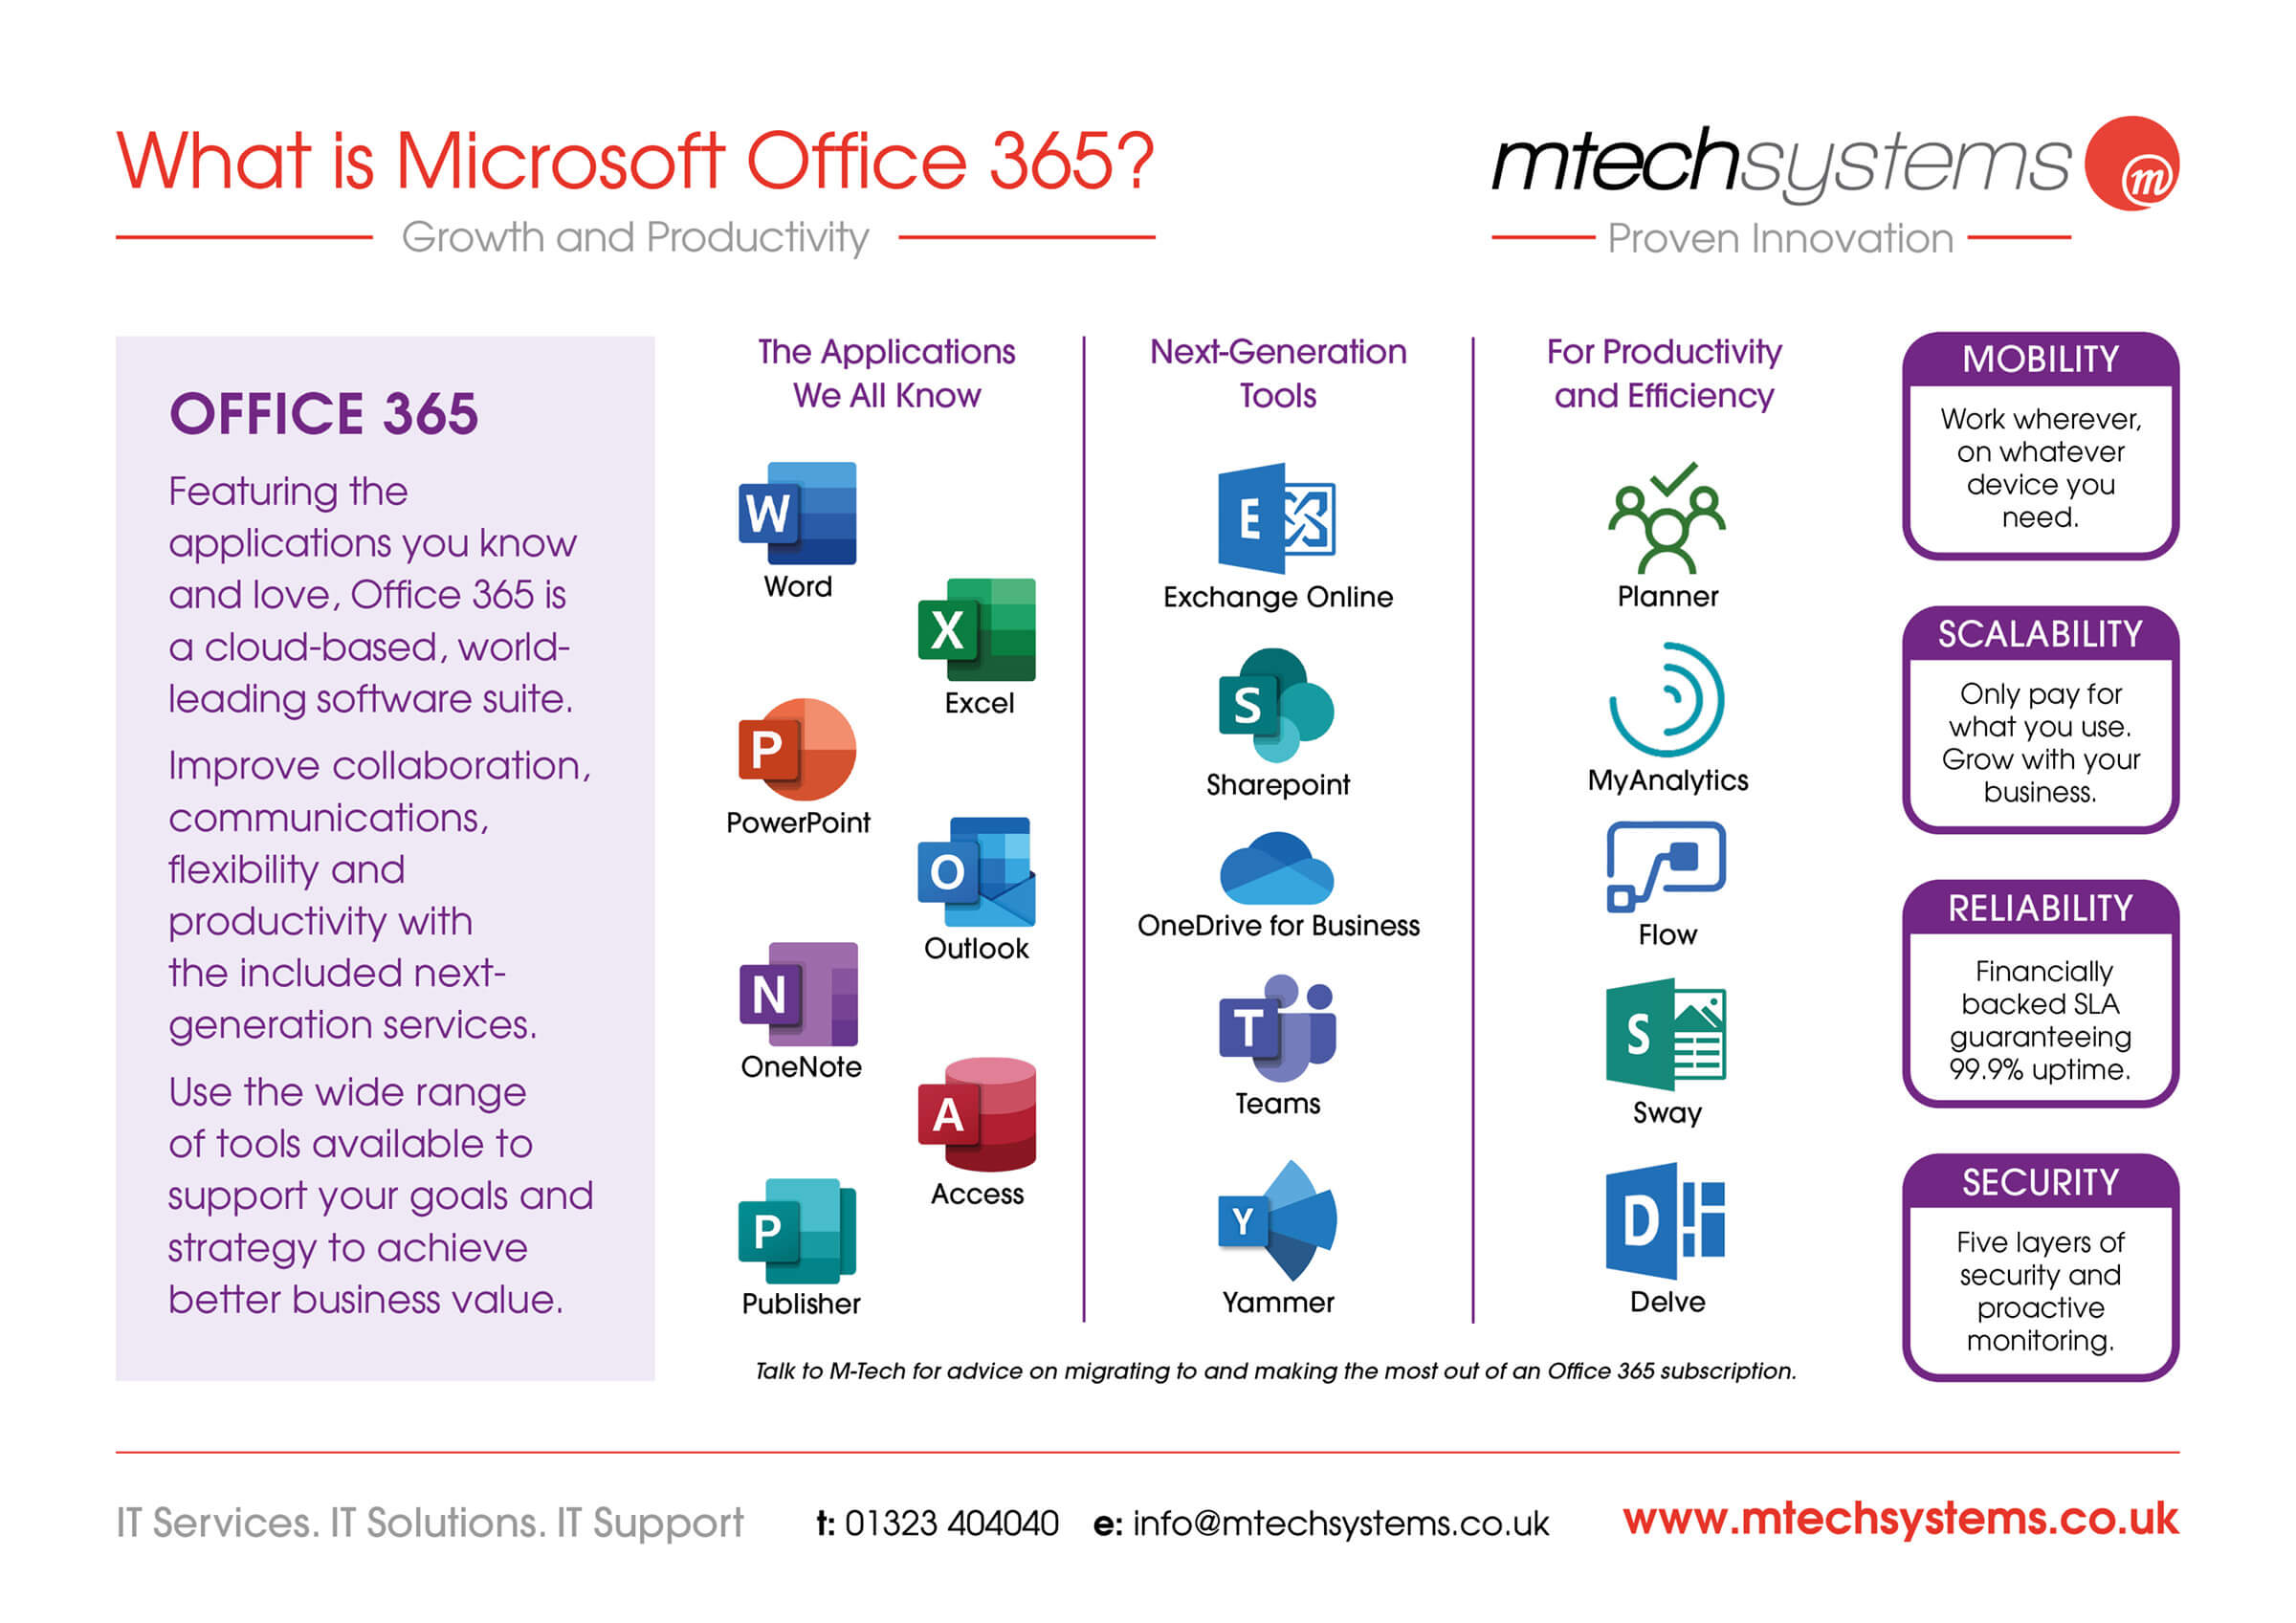 What is Microsoft Office 365?